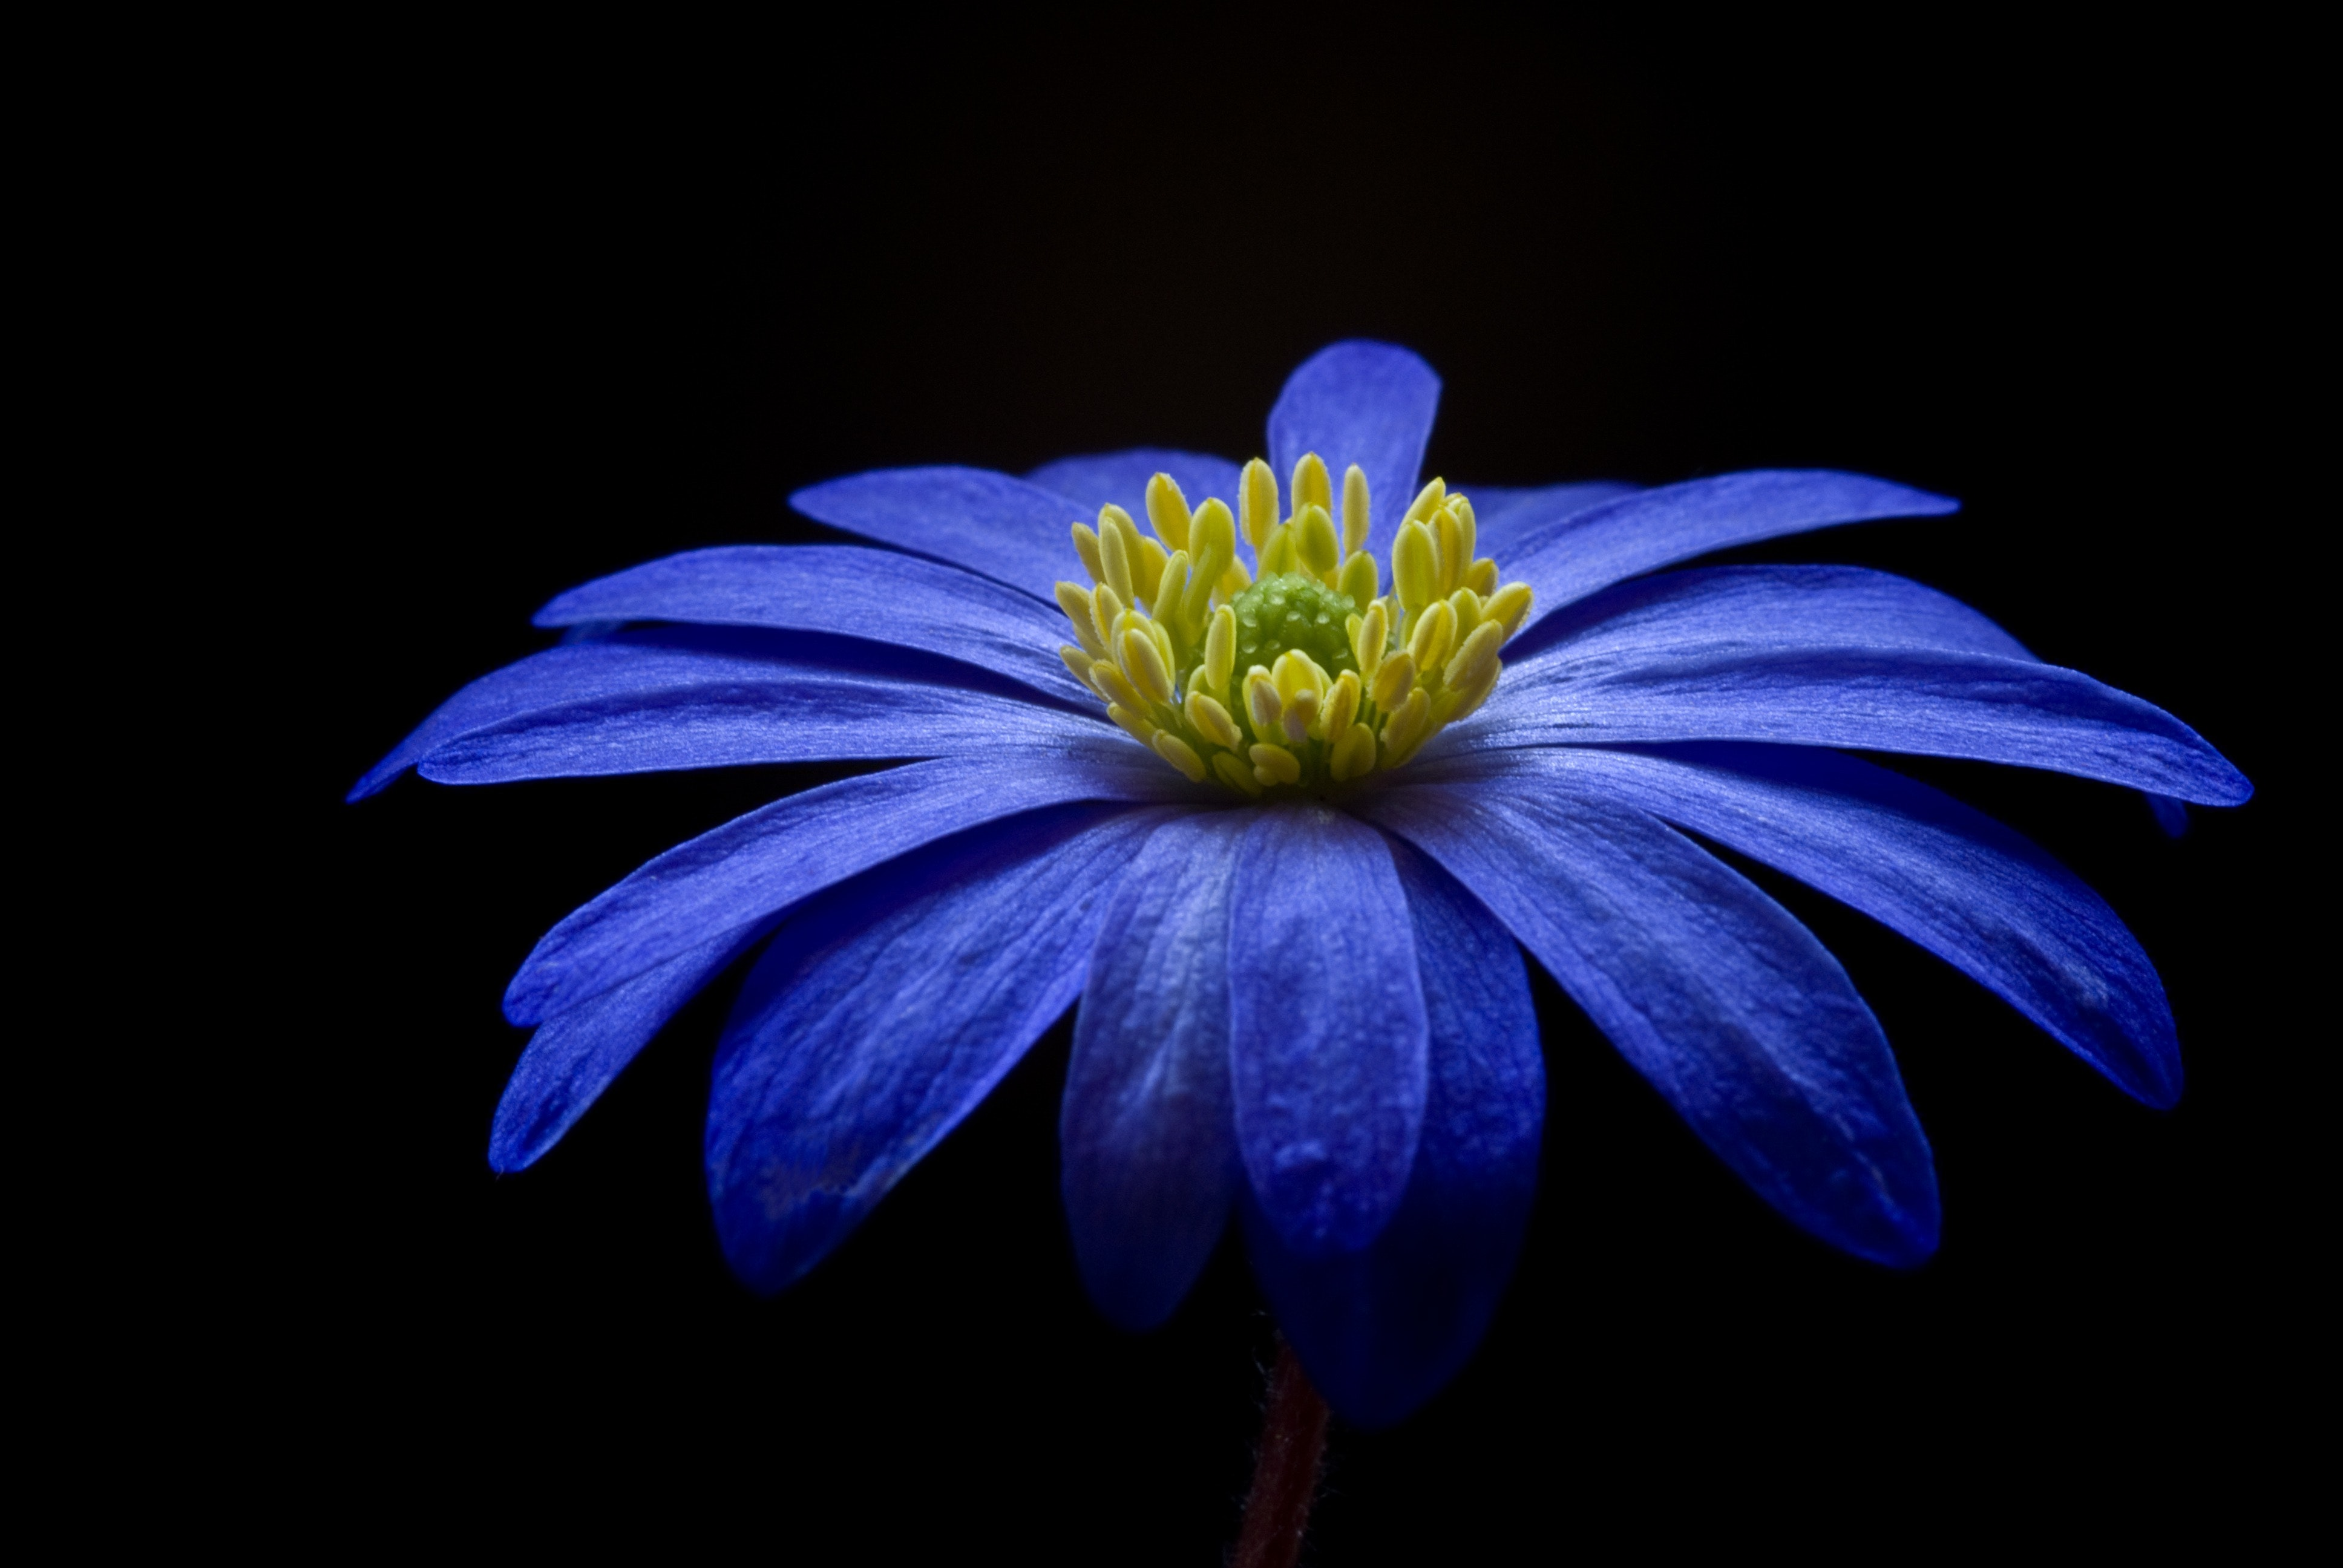 1000 great blue flowers photos pexels free stock photos fetching more photos mightylinksfo